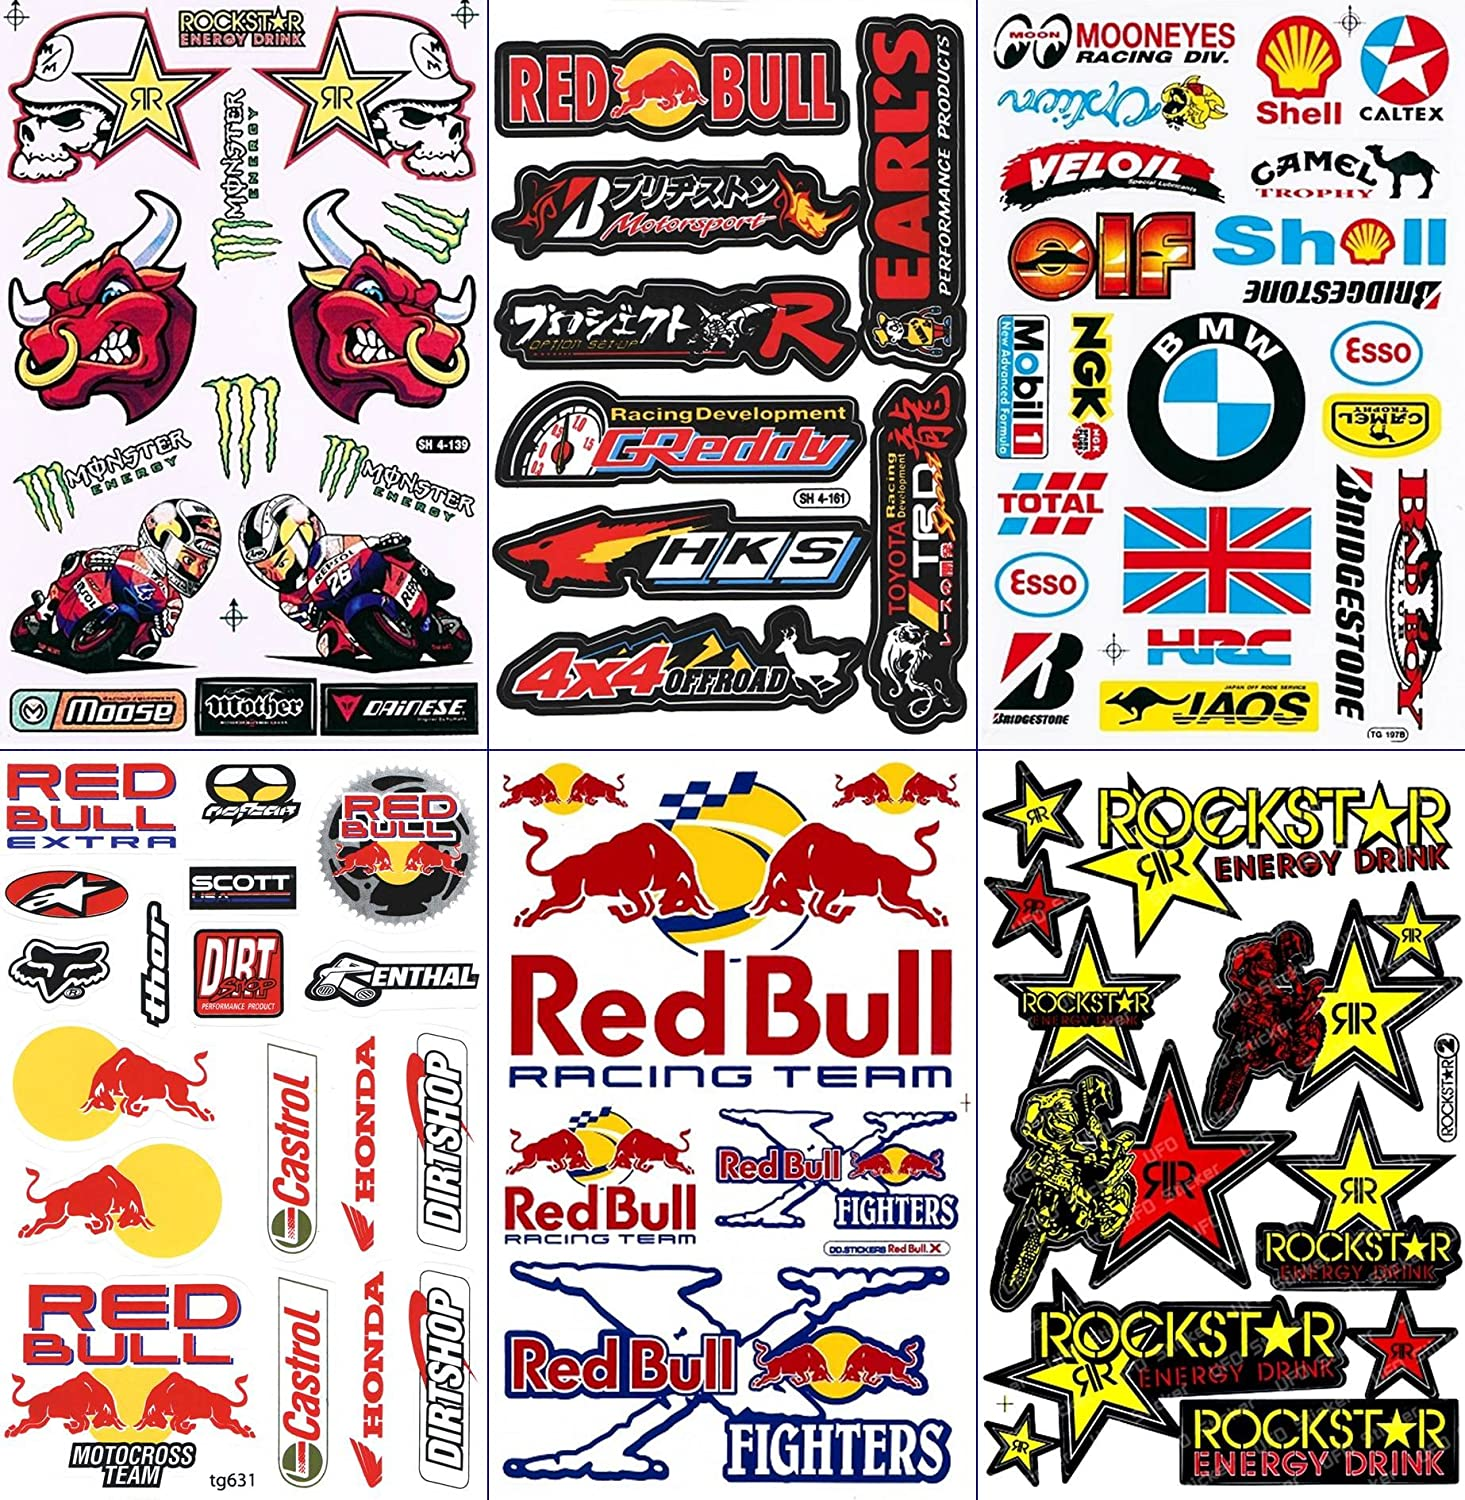 Amazon com race racing f1 logo sponsor sticker decal metal mulisha yamaha kawasaki motocross skateboard car bike bicycle kid wall helmet decoration home